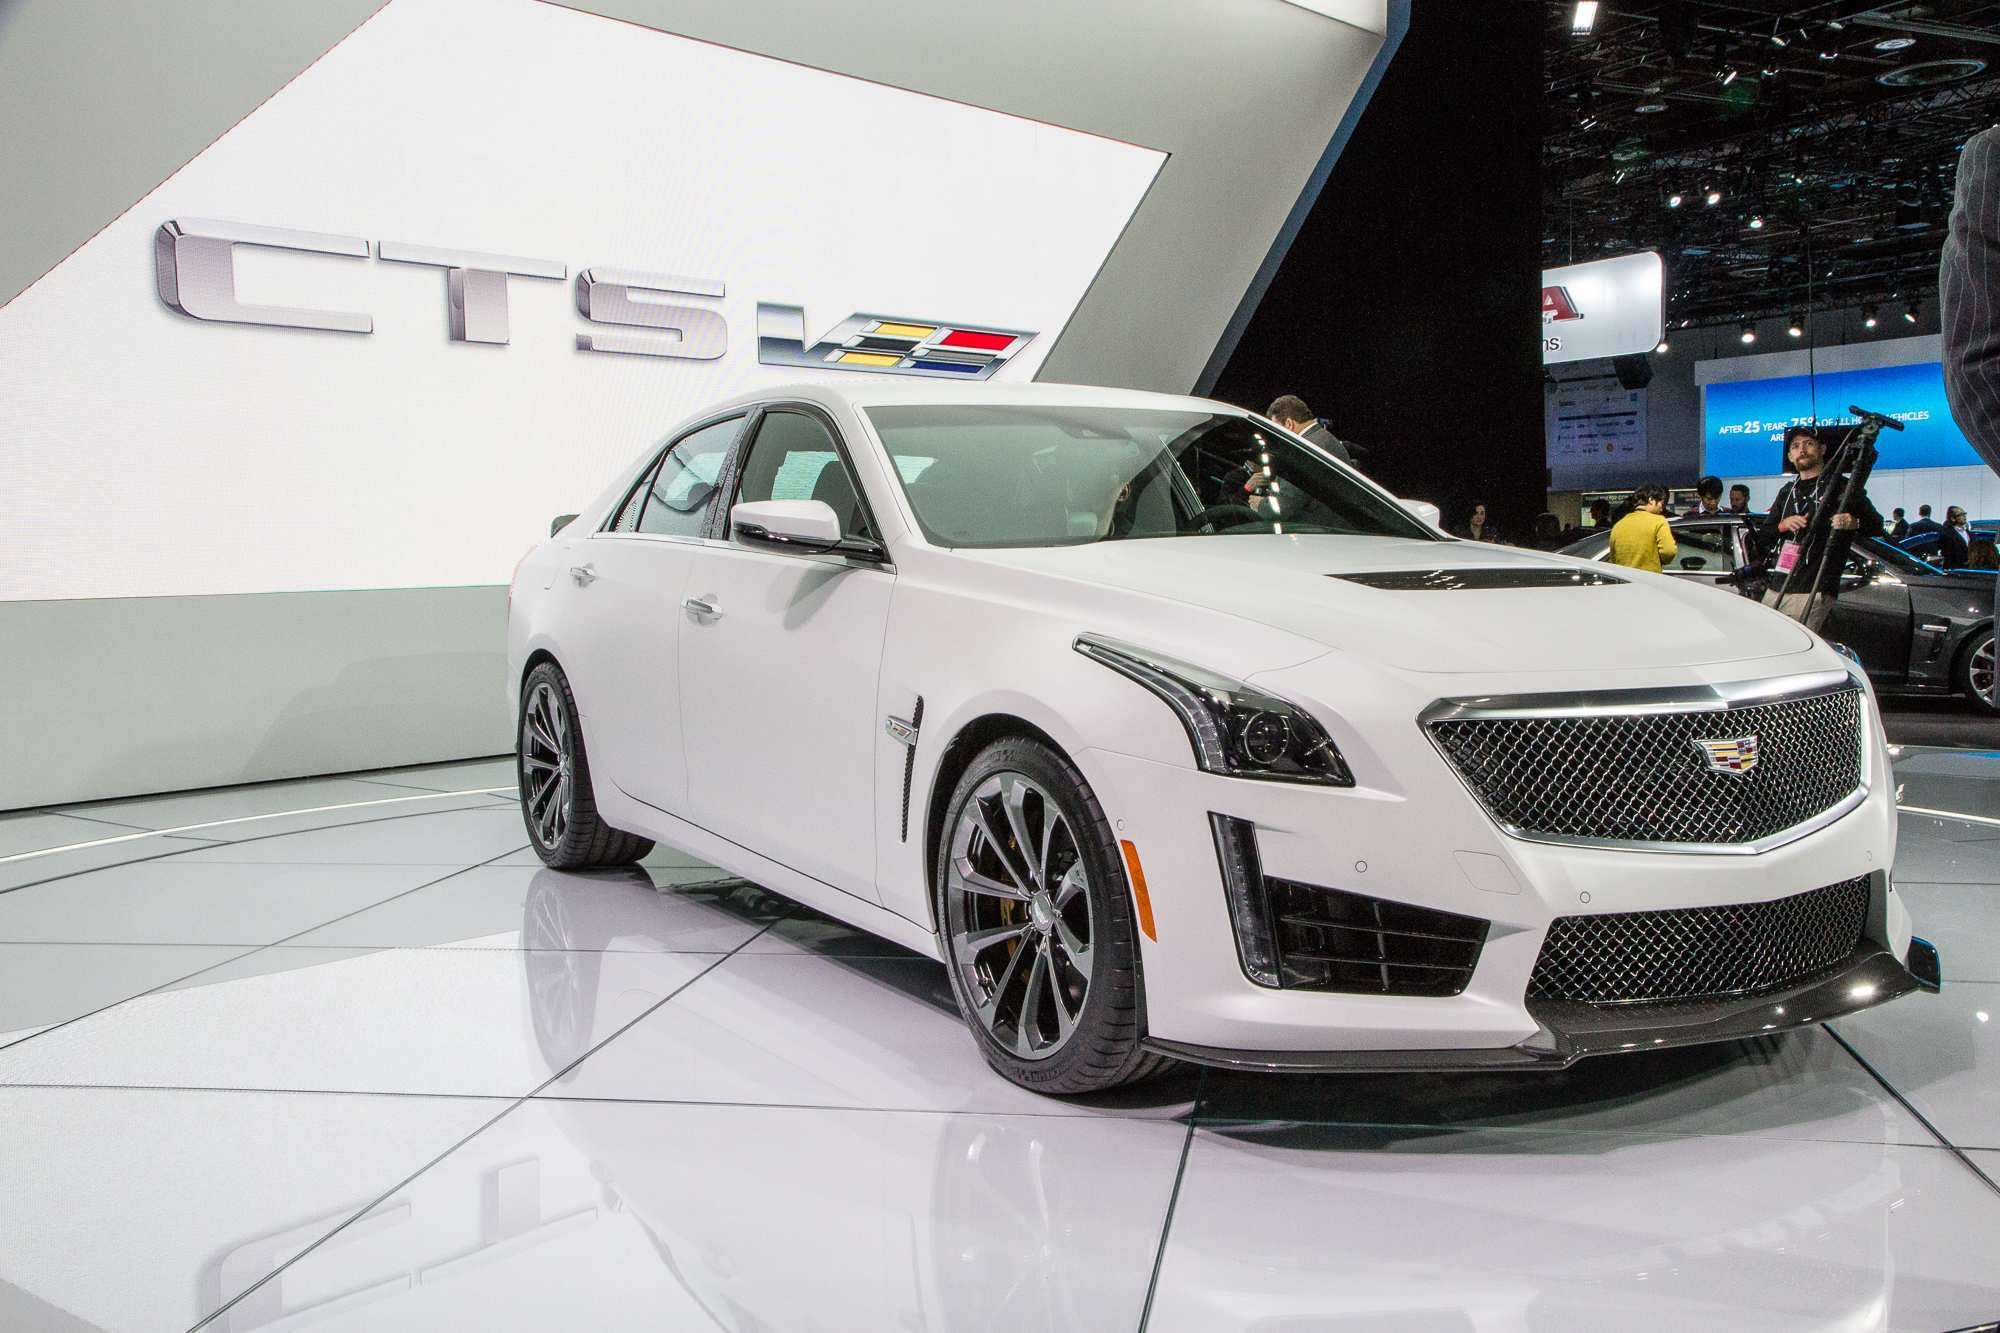 12 Great 2020 Cadillac Cts V First Drive with 2020 Cadillac Cts V